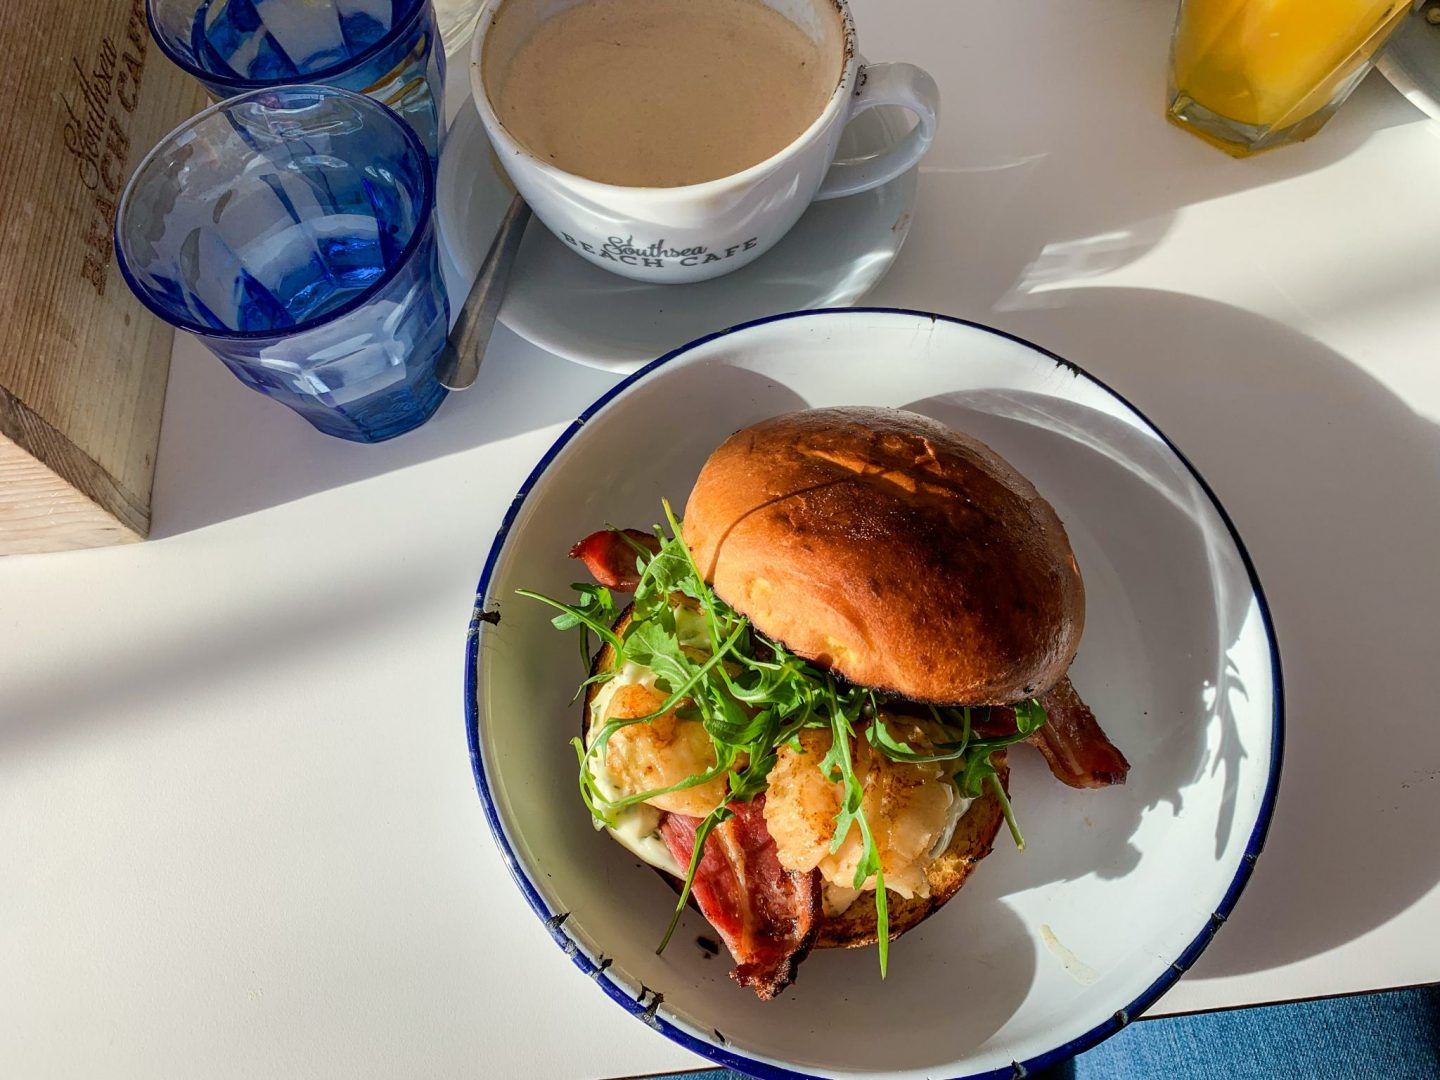 scallop and bacon bap